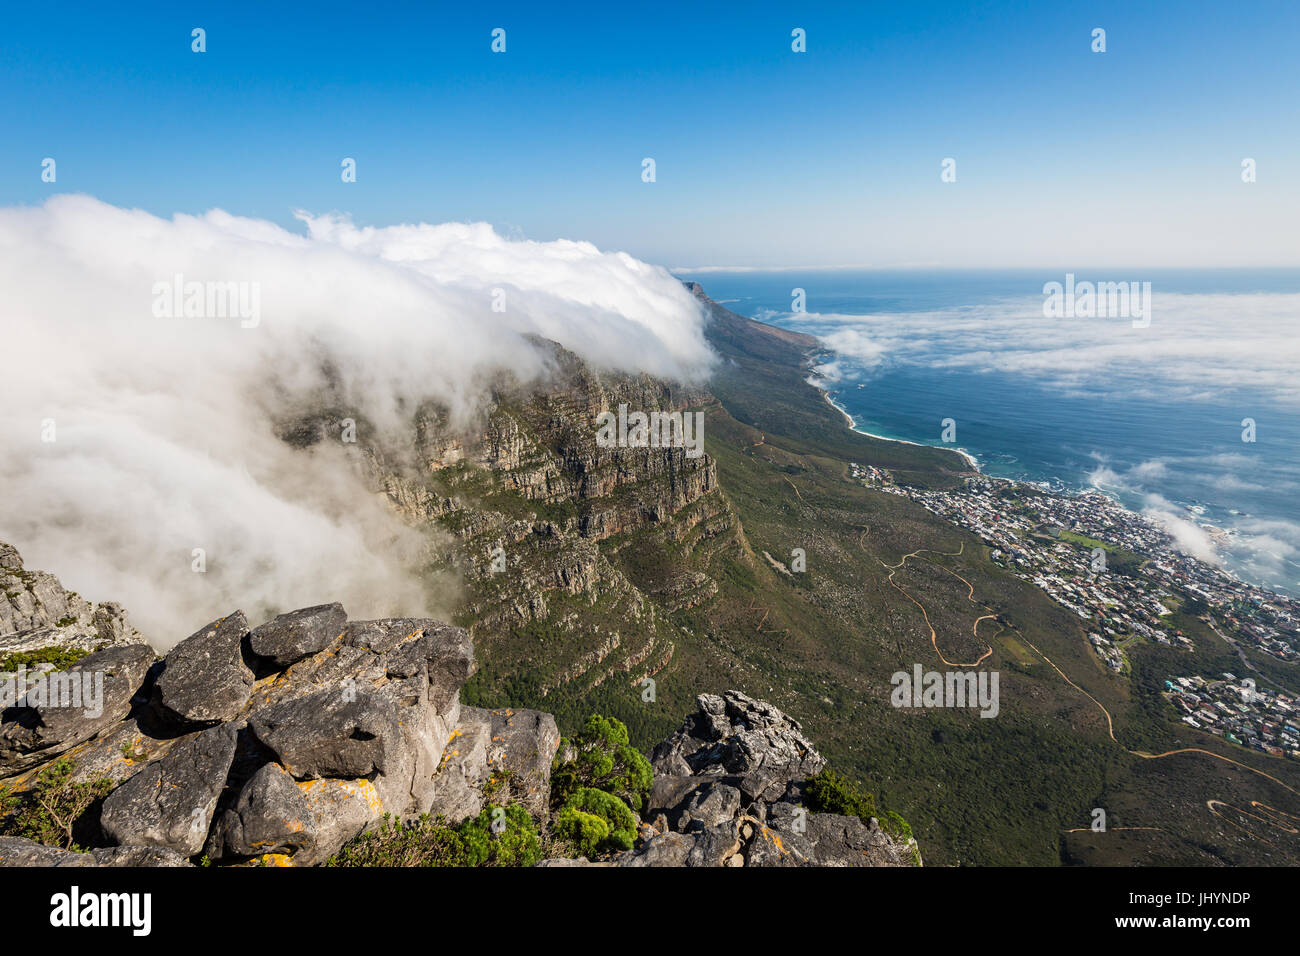 Table Mountain covered in a tablecloth of orographic clouds, Camps Bay below covered in low cloud, Cape Town, South - Stock Image